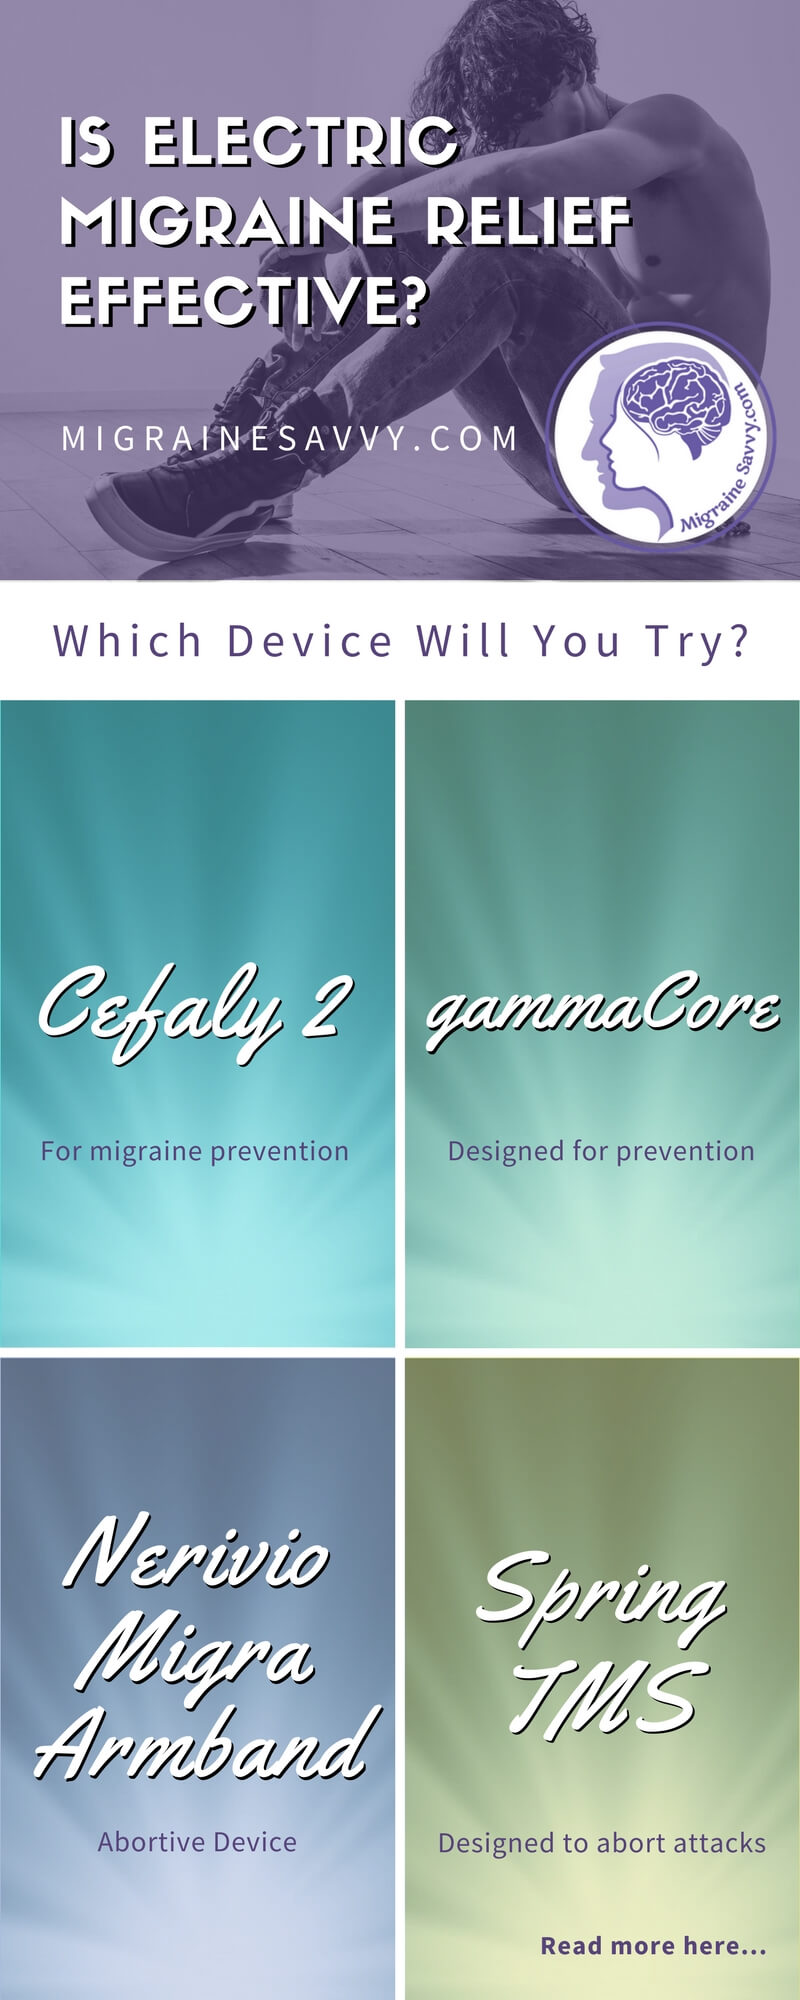 Cefaly, gammaCore, Spring TMS, Biofeedback and the new kid on the block for electric migraine relief.